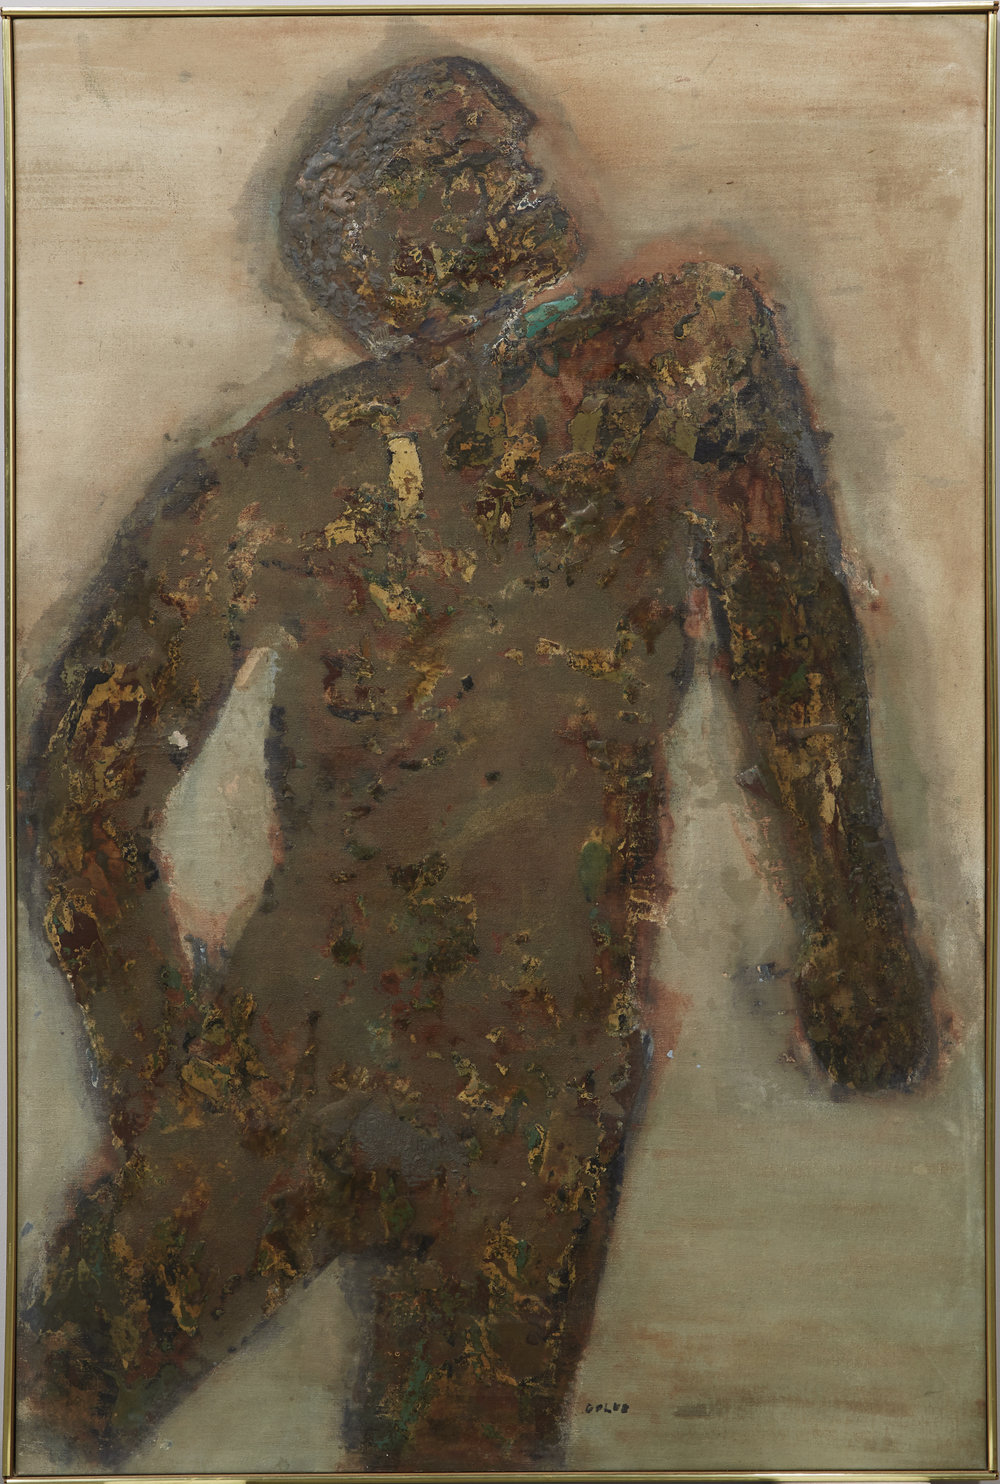 Burnt Man , Leon Golub, before treatment at The Center.